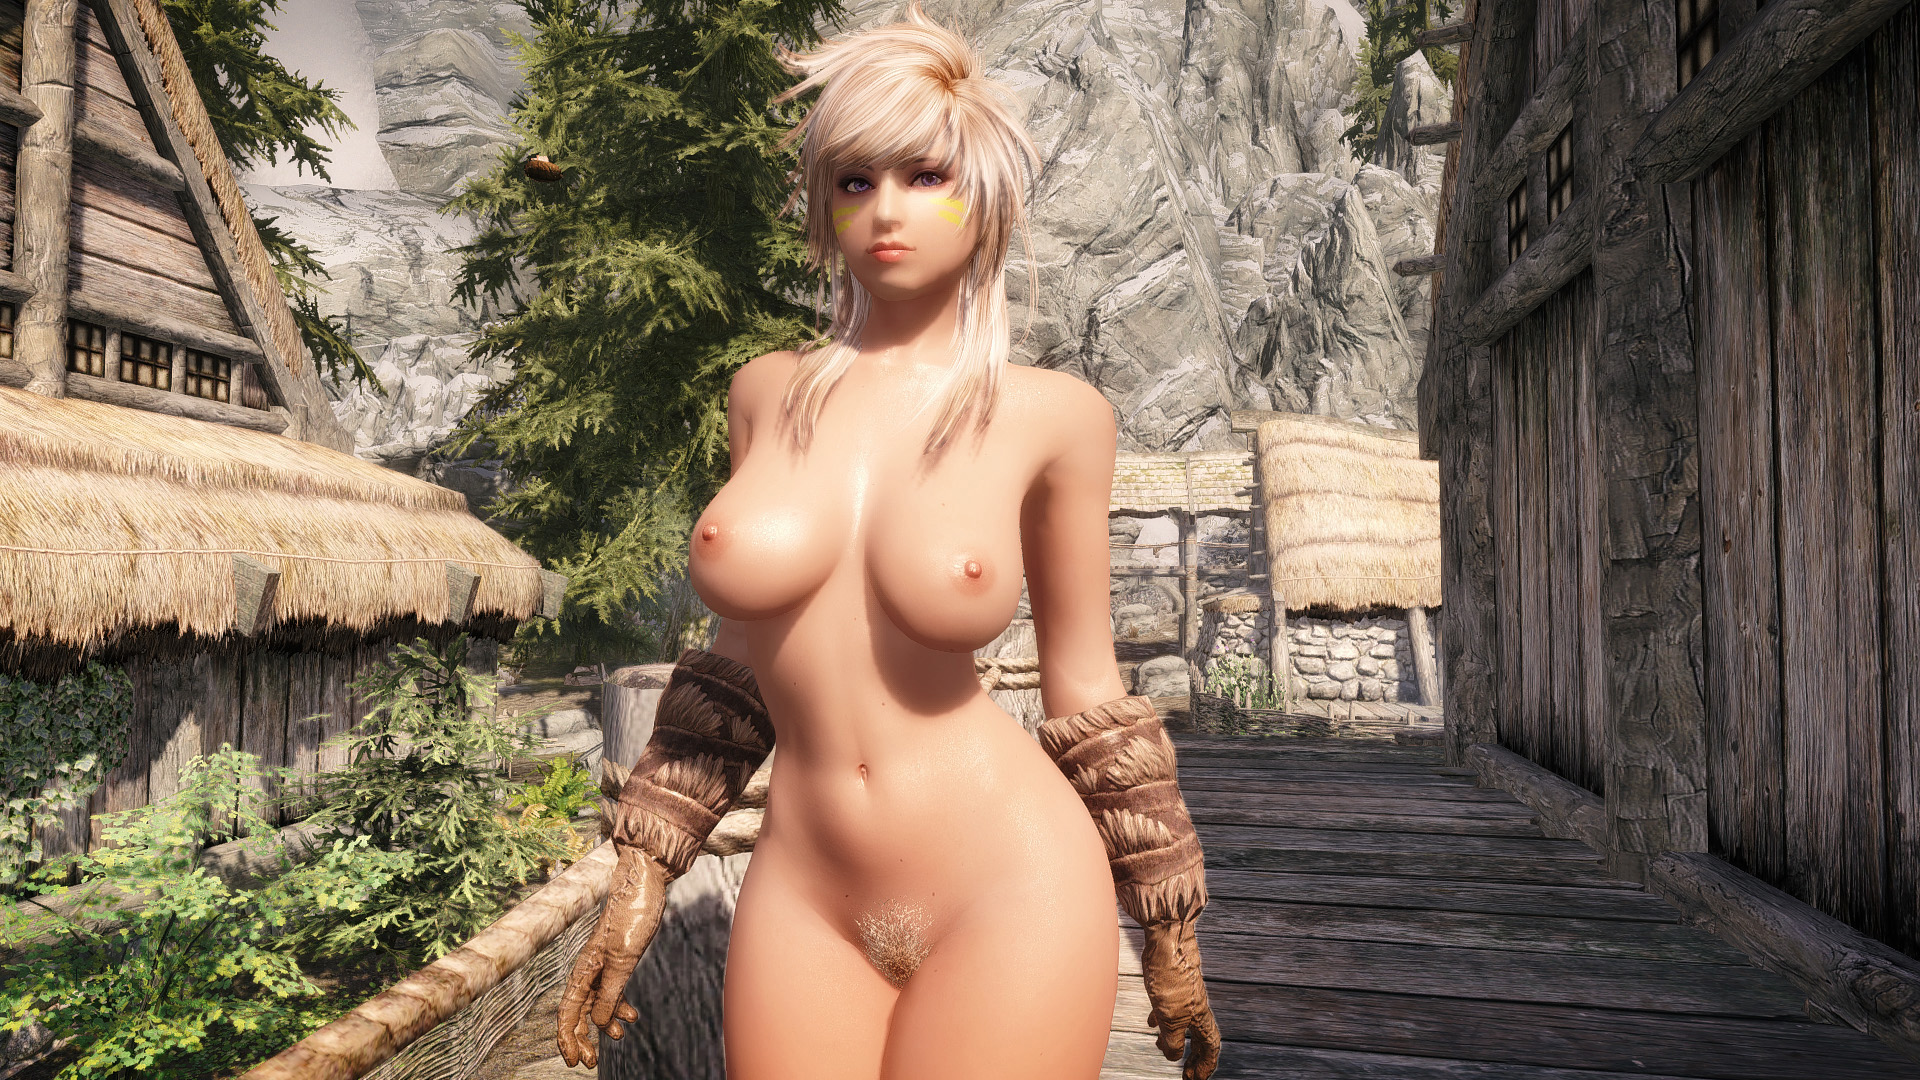 Erotic skyrim mods sexy photos